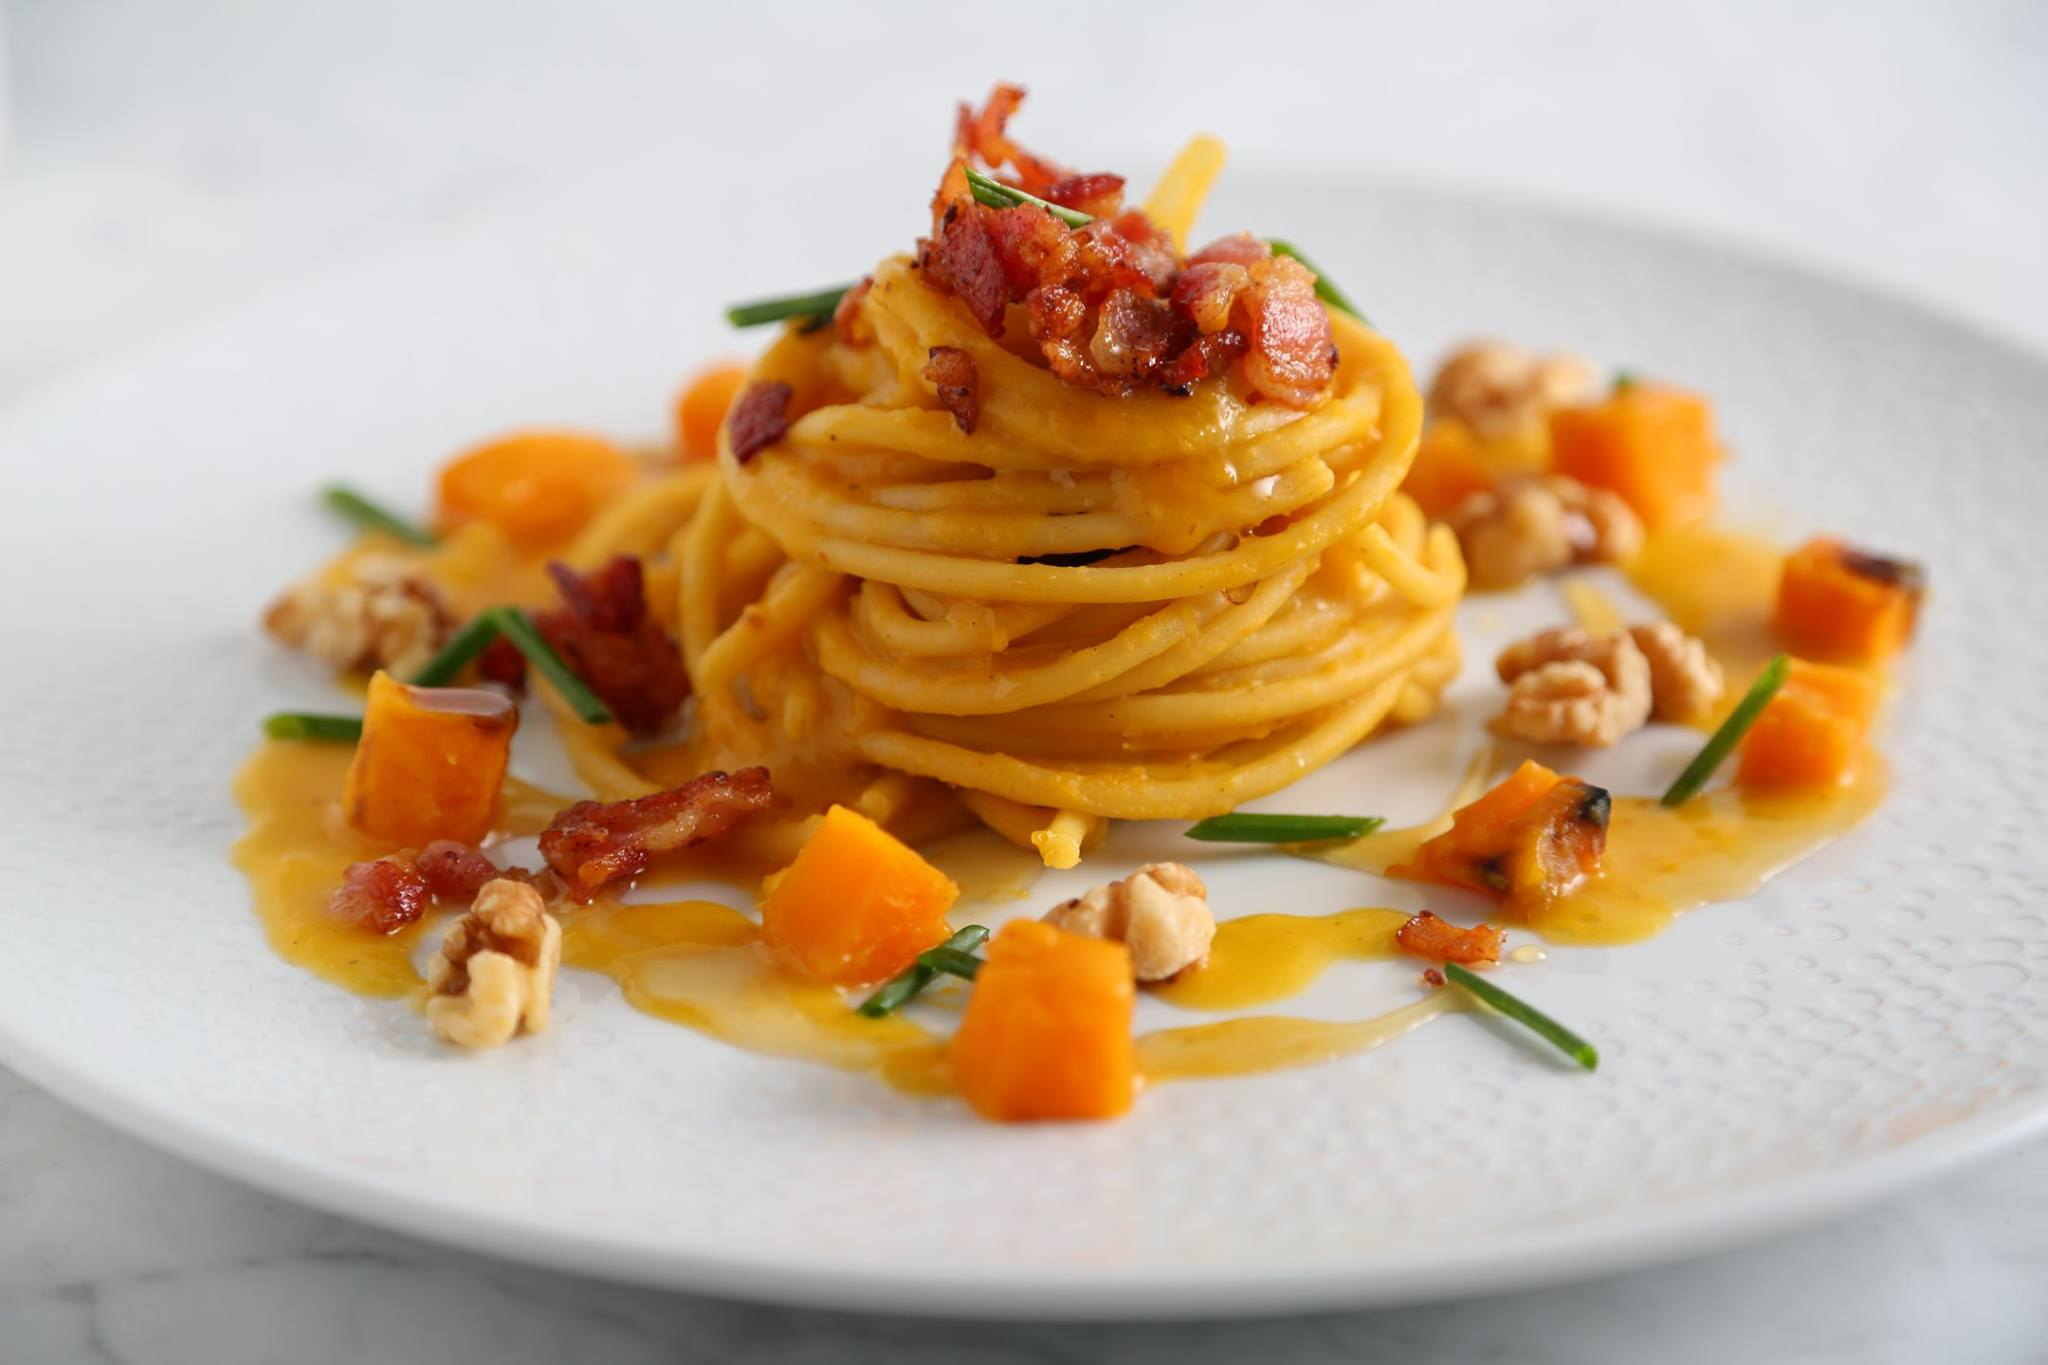 Bucatini with Butternut Squash, Hickory-Smoked Bacon & Walnuts